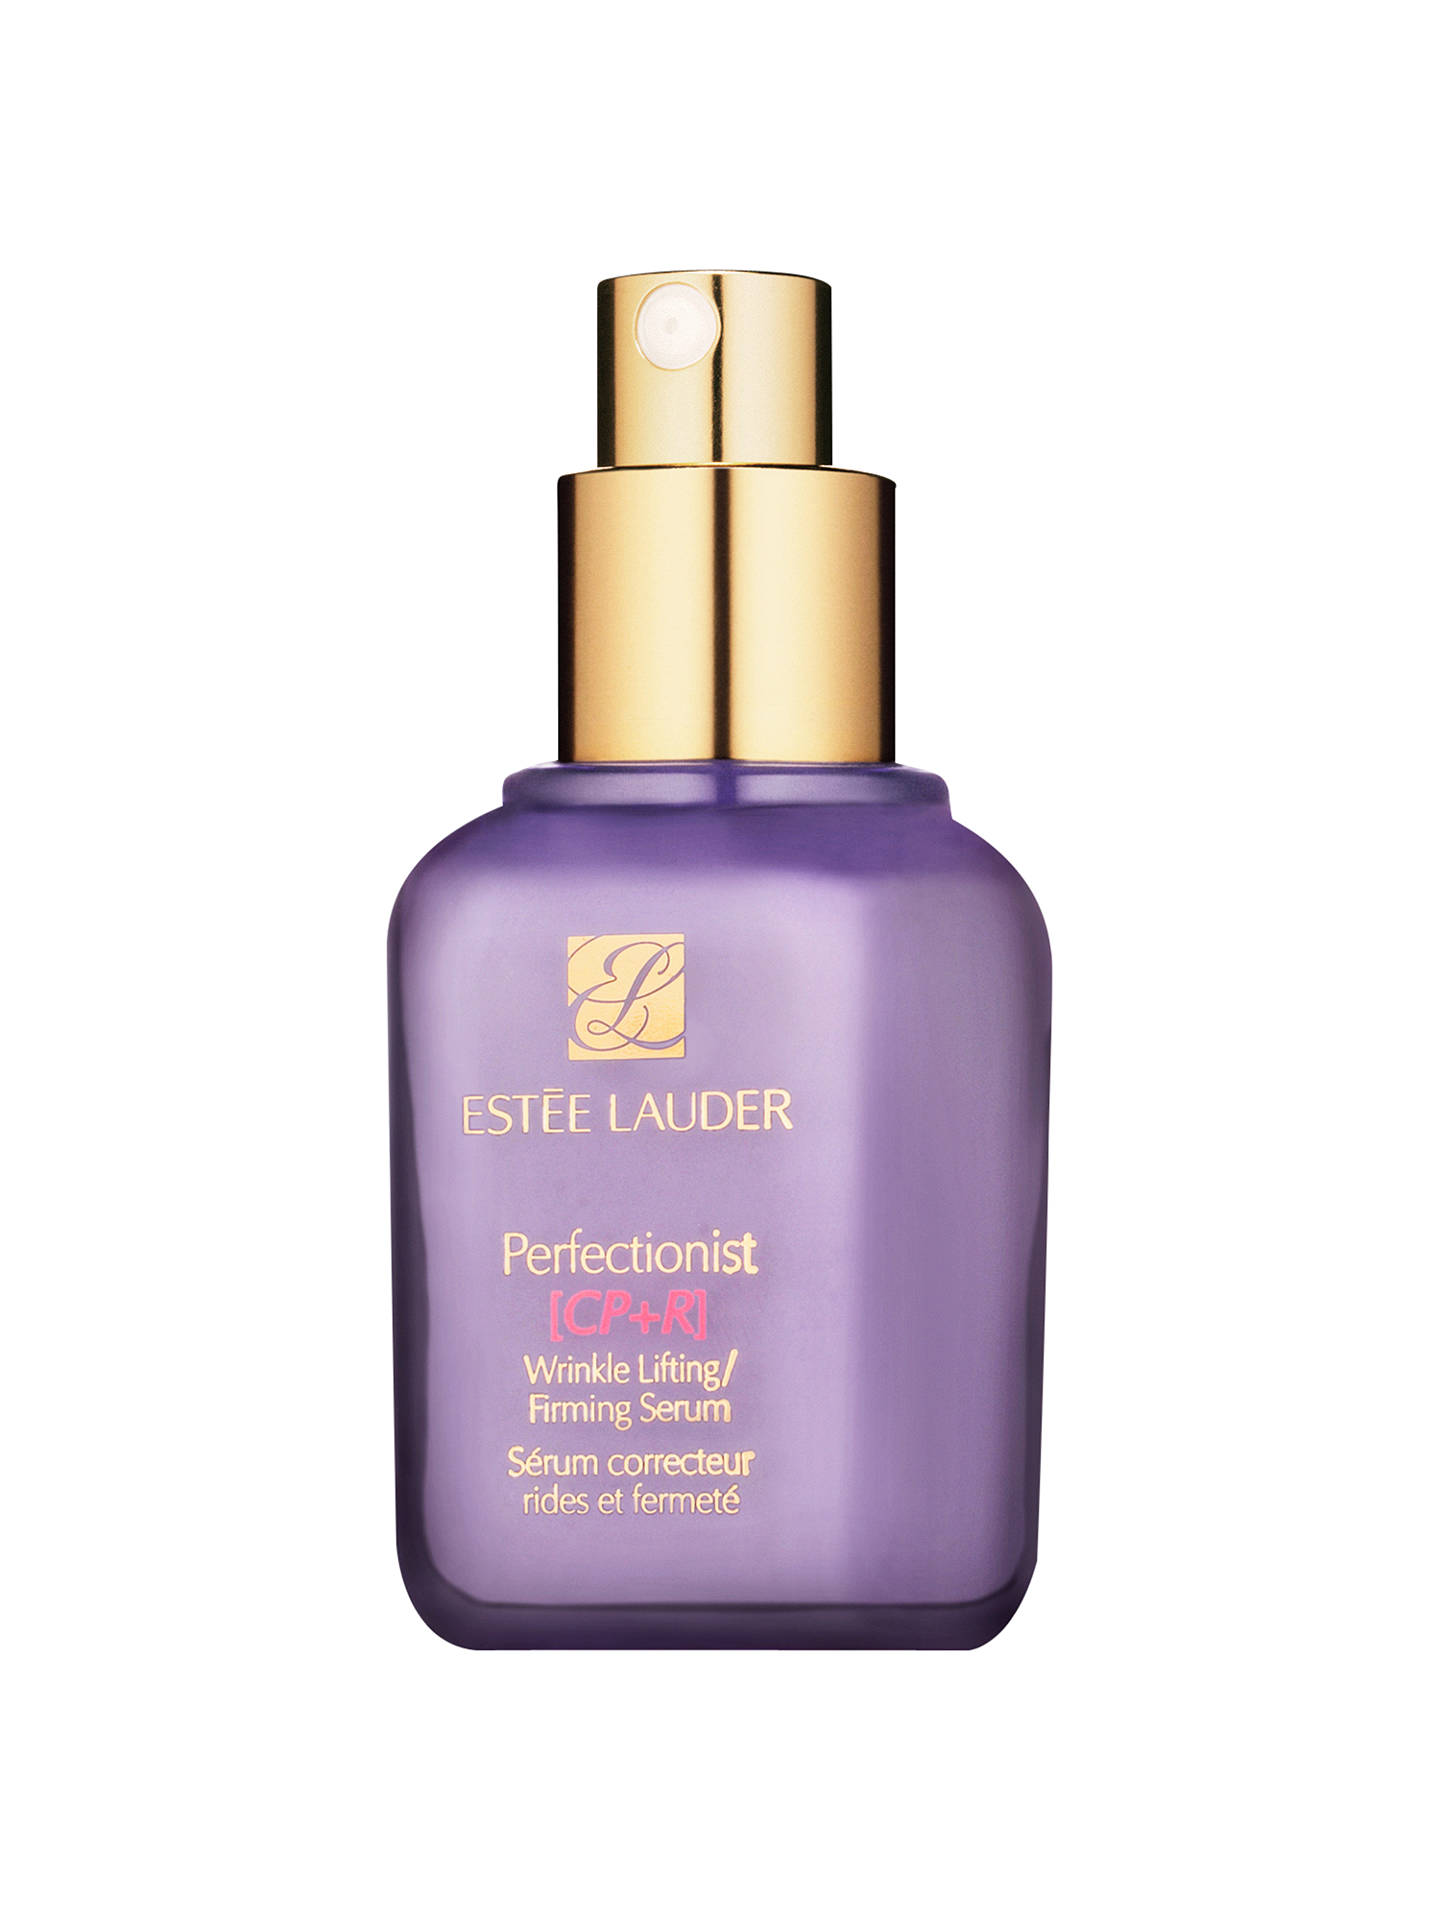 BuyEstée Lauder Perfectionist [CP+R] Wrinkle/Lifting Serum, 30ml Online at johnlewis.com